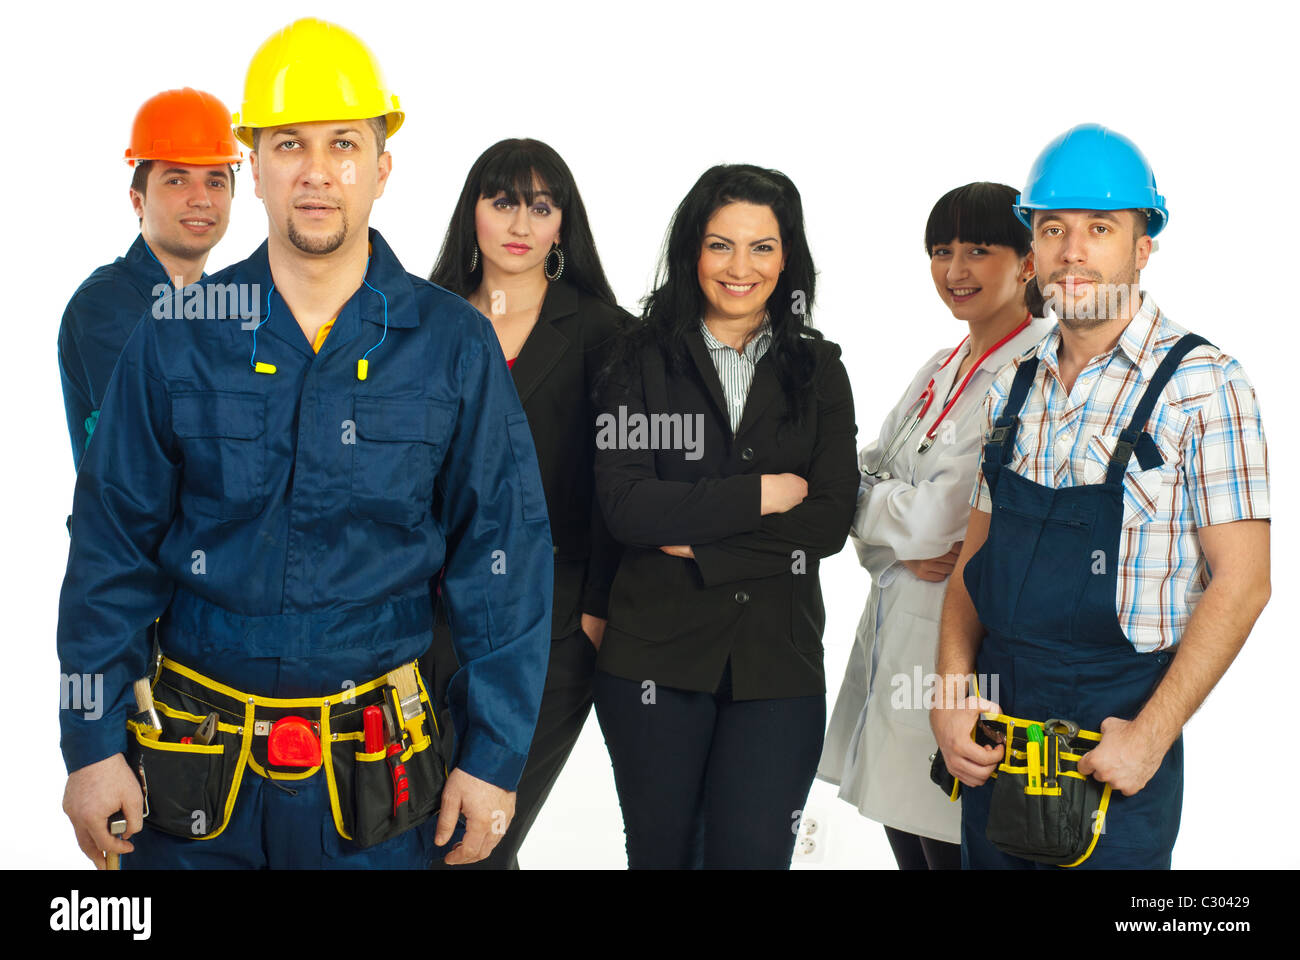 Constructor worker in front of group with different careers isolated on white background - Stock Image